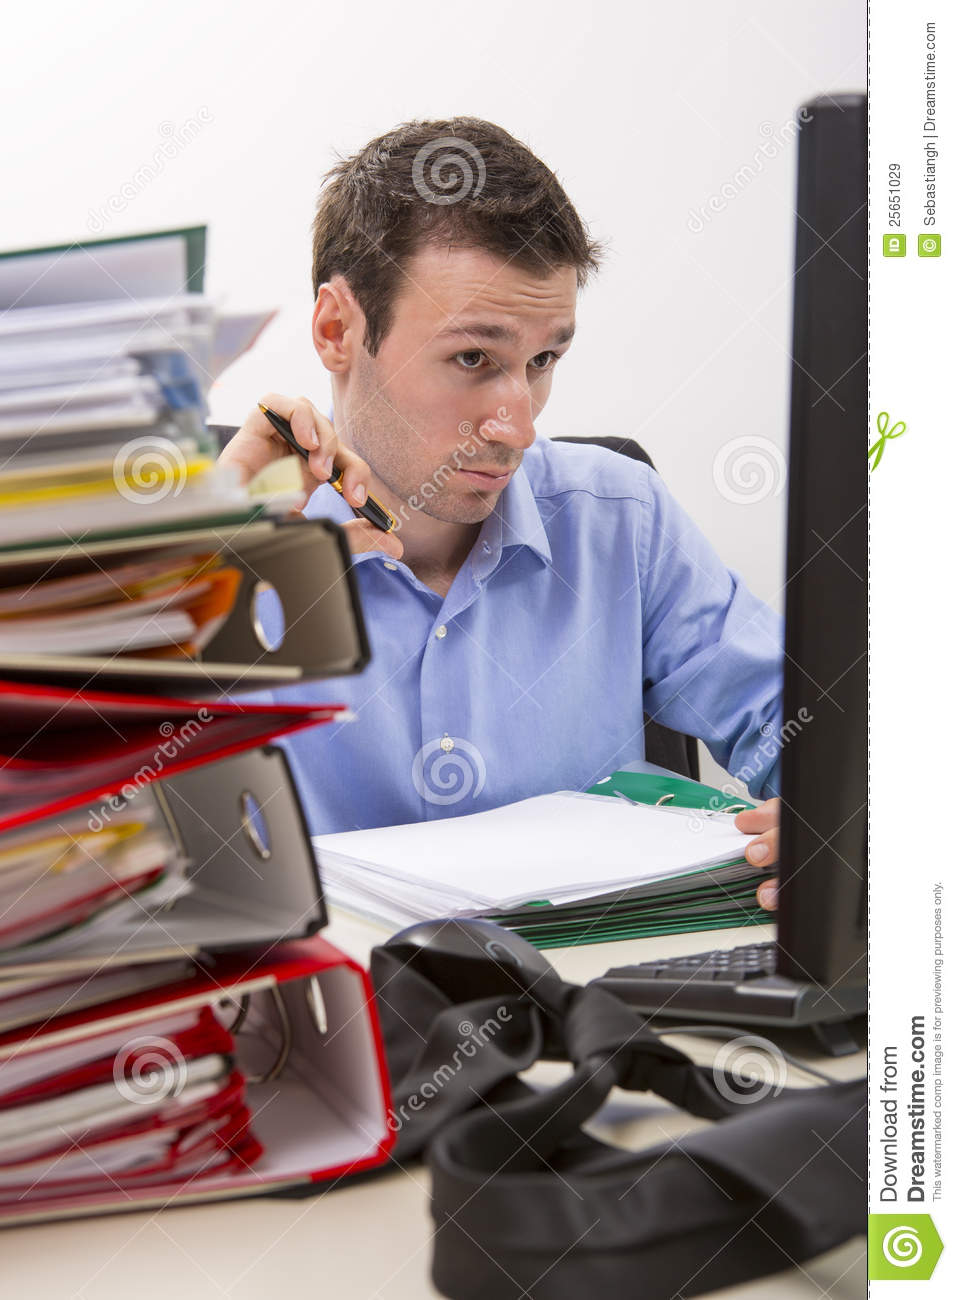 Confused Accountant At Work Stock Image  Image of